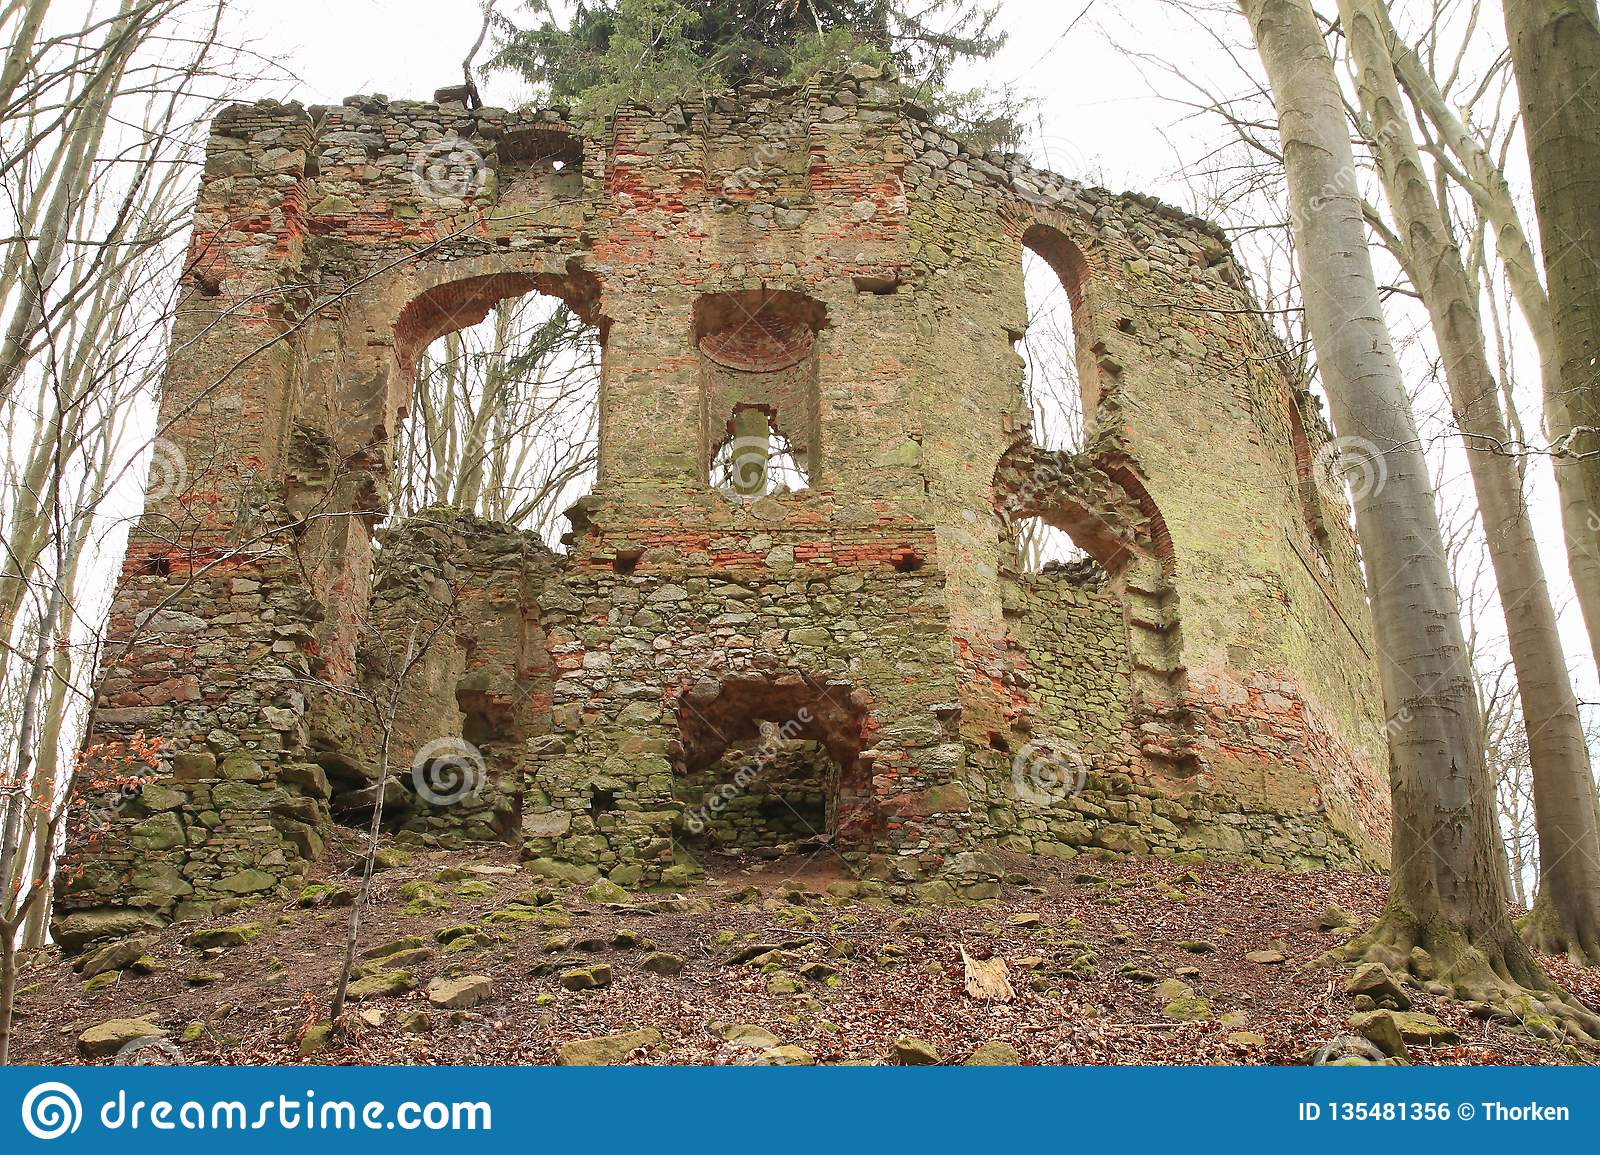 The ruins of the chapel of St. Mary Magdalene